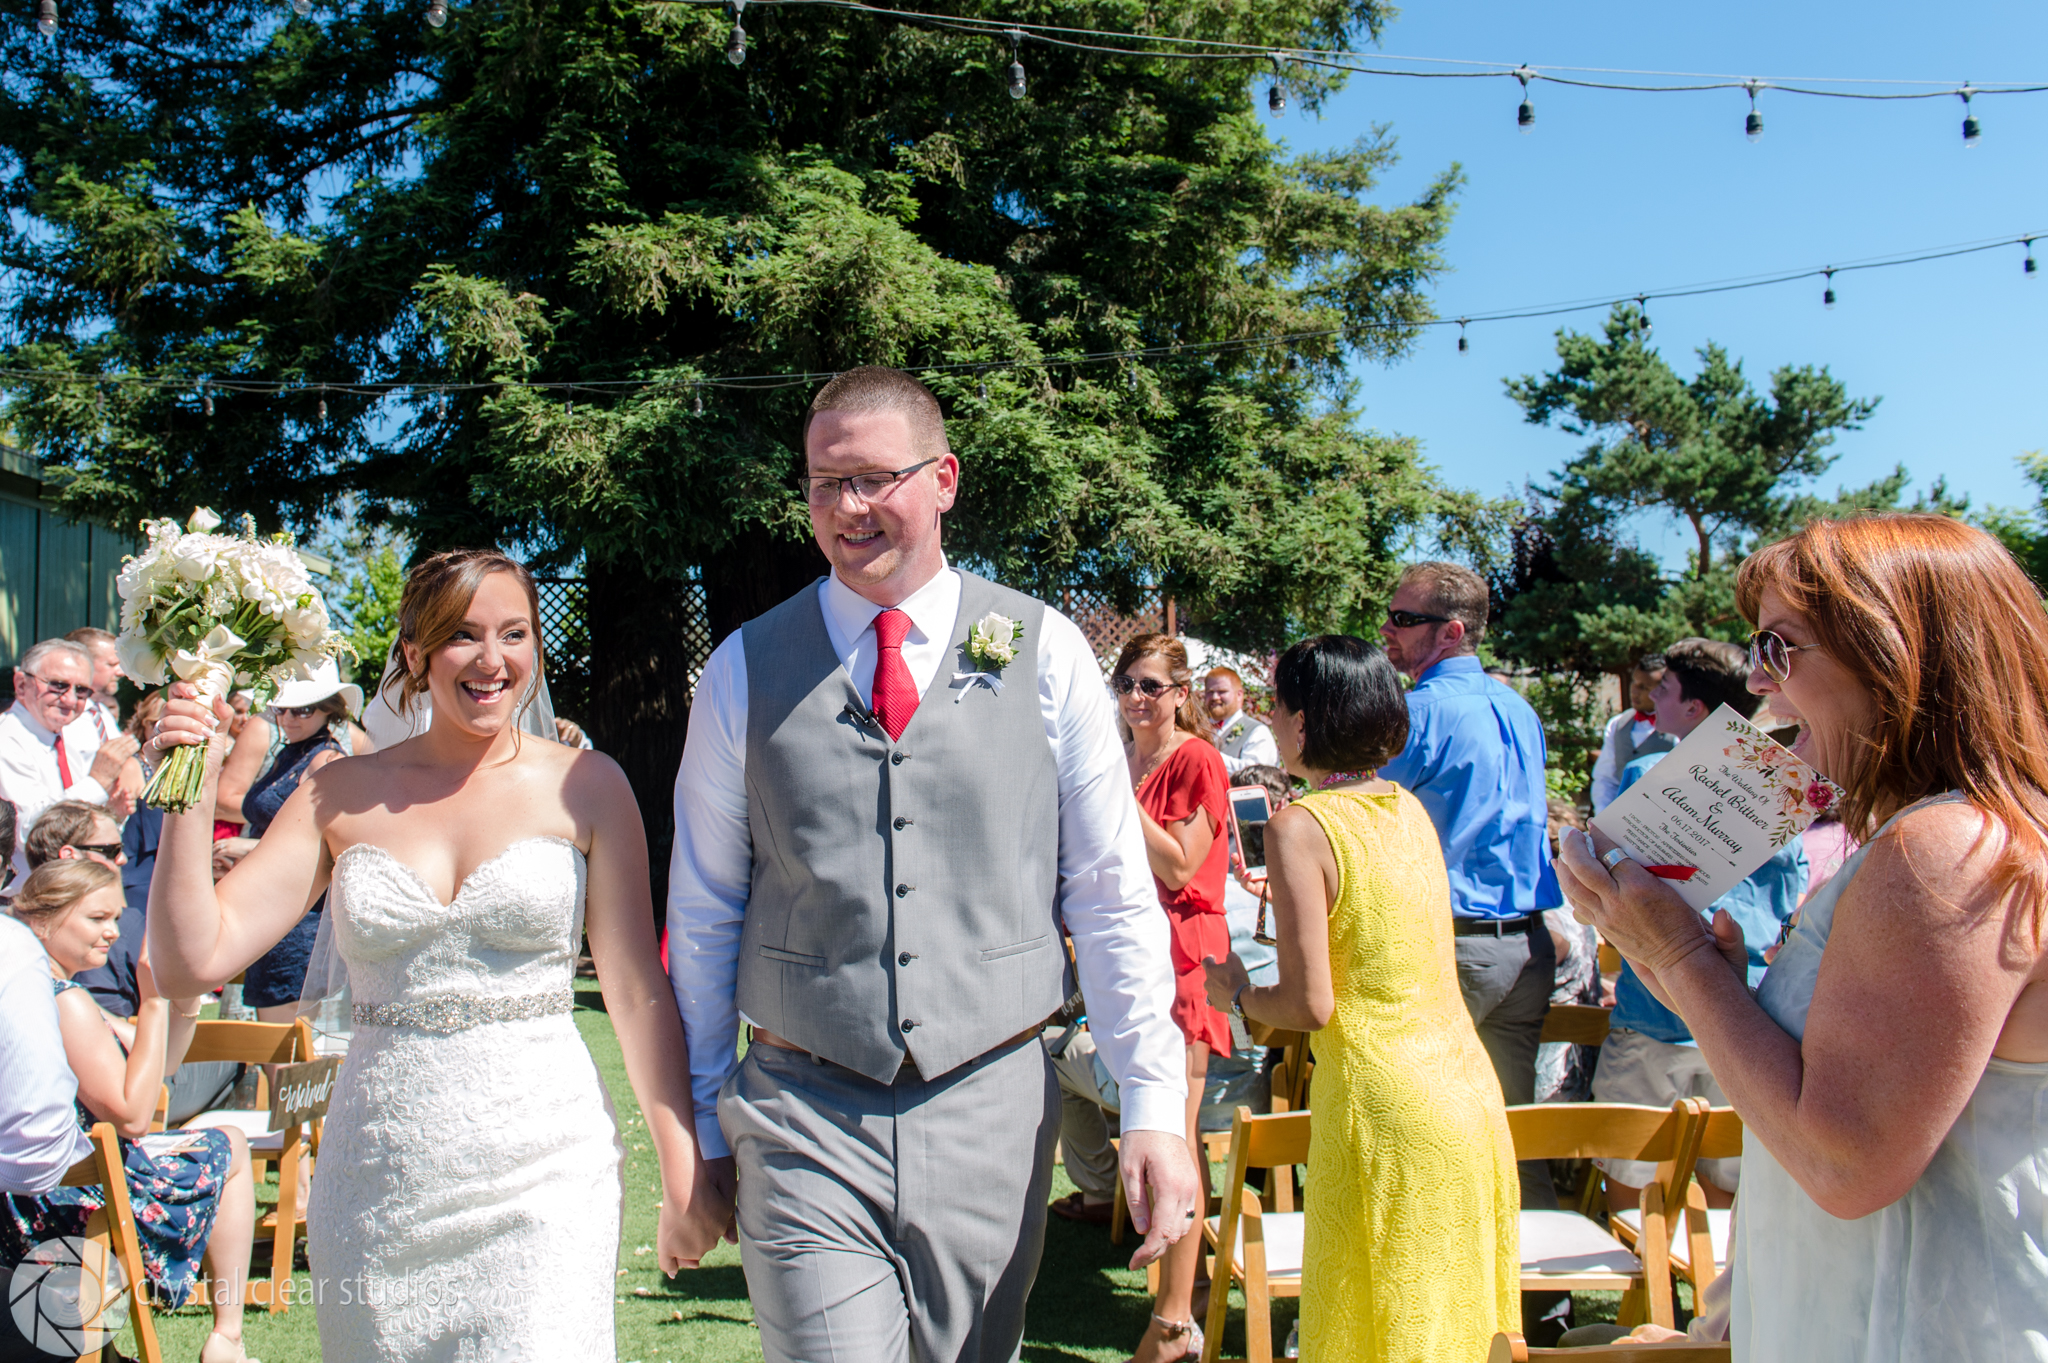 Wedding Ceremony &Reception Package $1045 - - Everything in the Reception Package, PLUS- 1 additional hour of coverage- 1/2 hour Pre-ceremony music (5 1/2 hrs total coverage)- Wireless Microphone for Officiant- 2nd Sound system for Ceremony- 1 Additional Custom Song Edit (Up to 2 total)